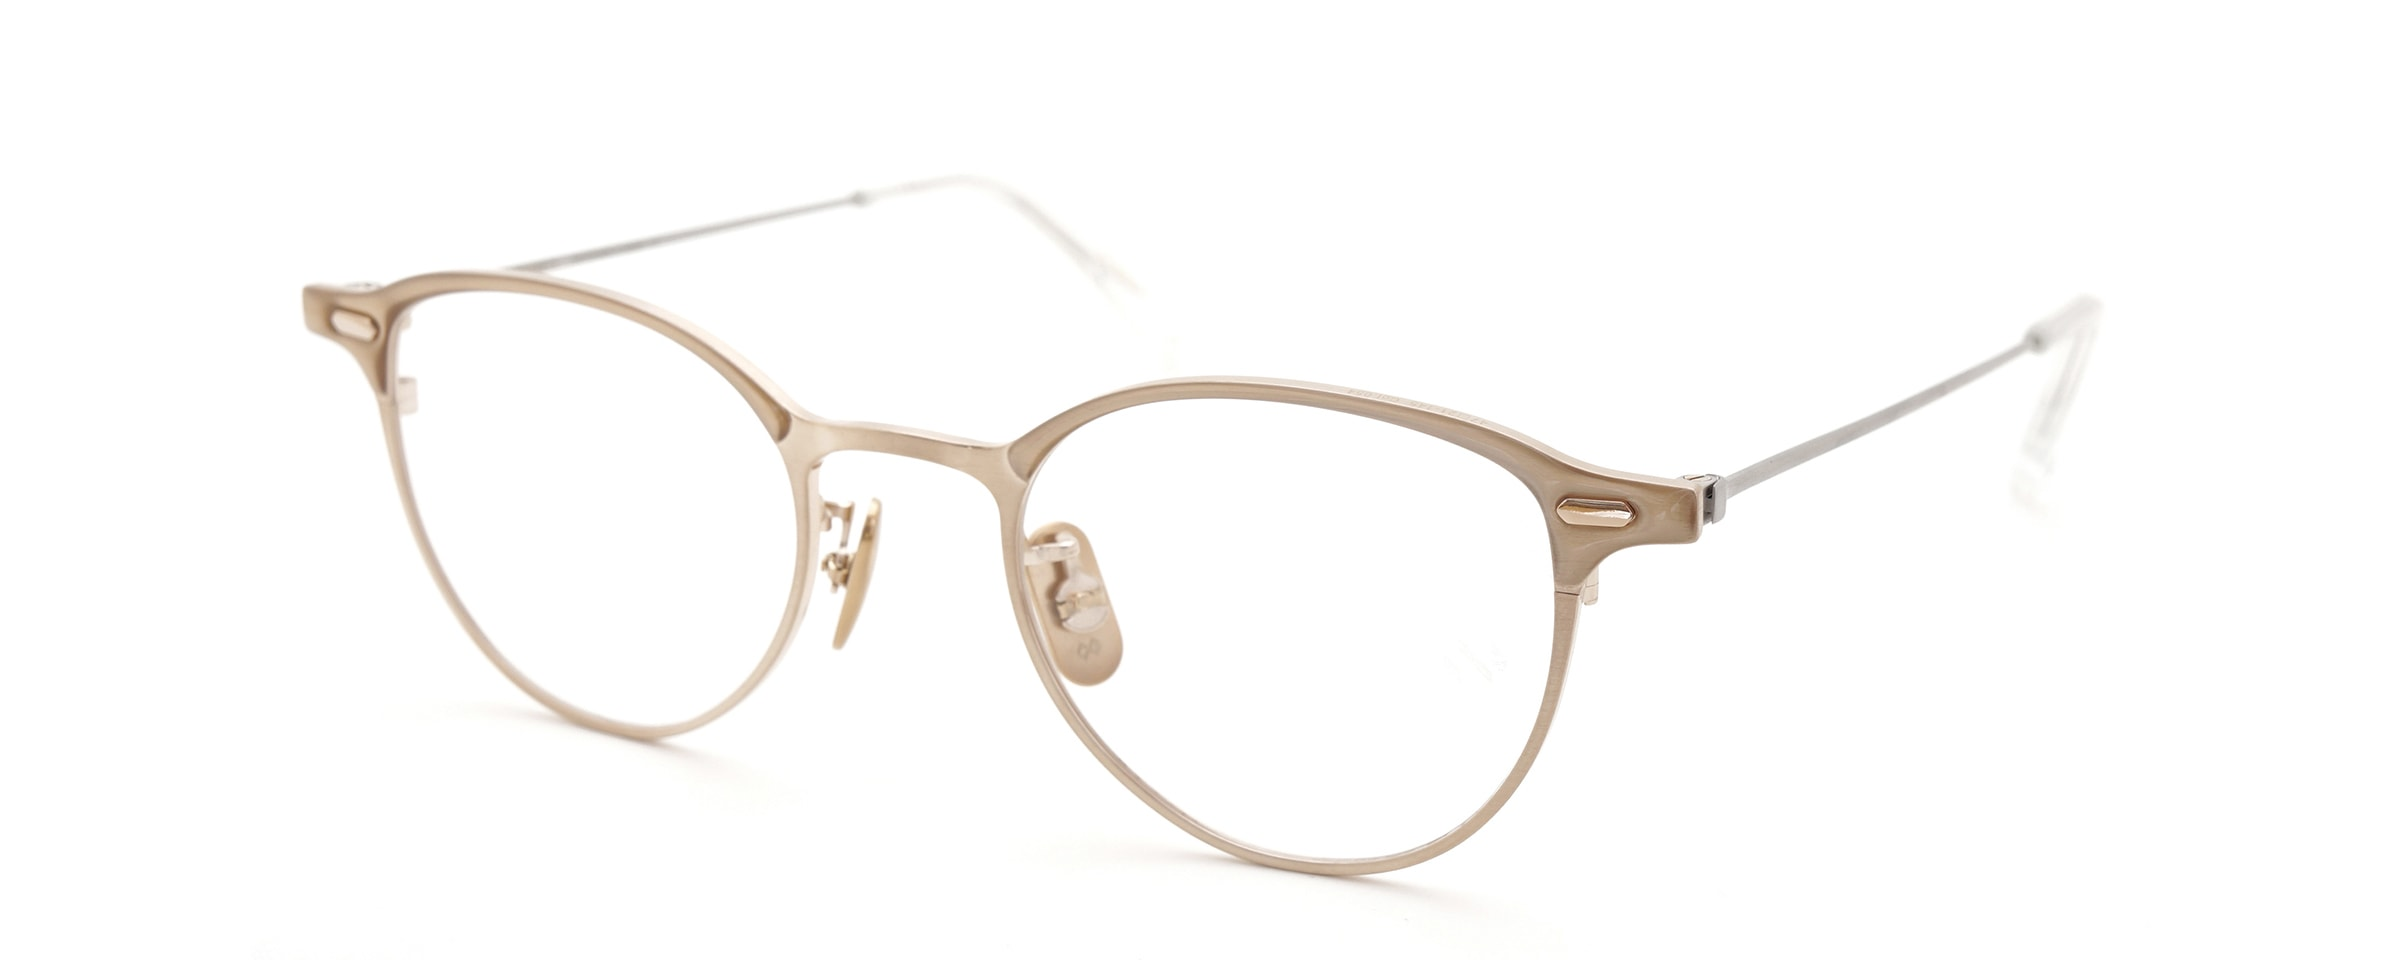 OG × OLIVER GOLDSMITH Re:RIPON 47 リ:リポン